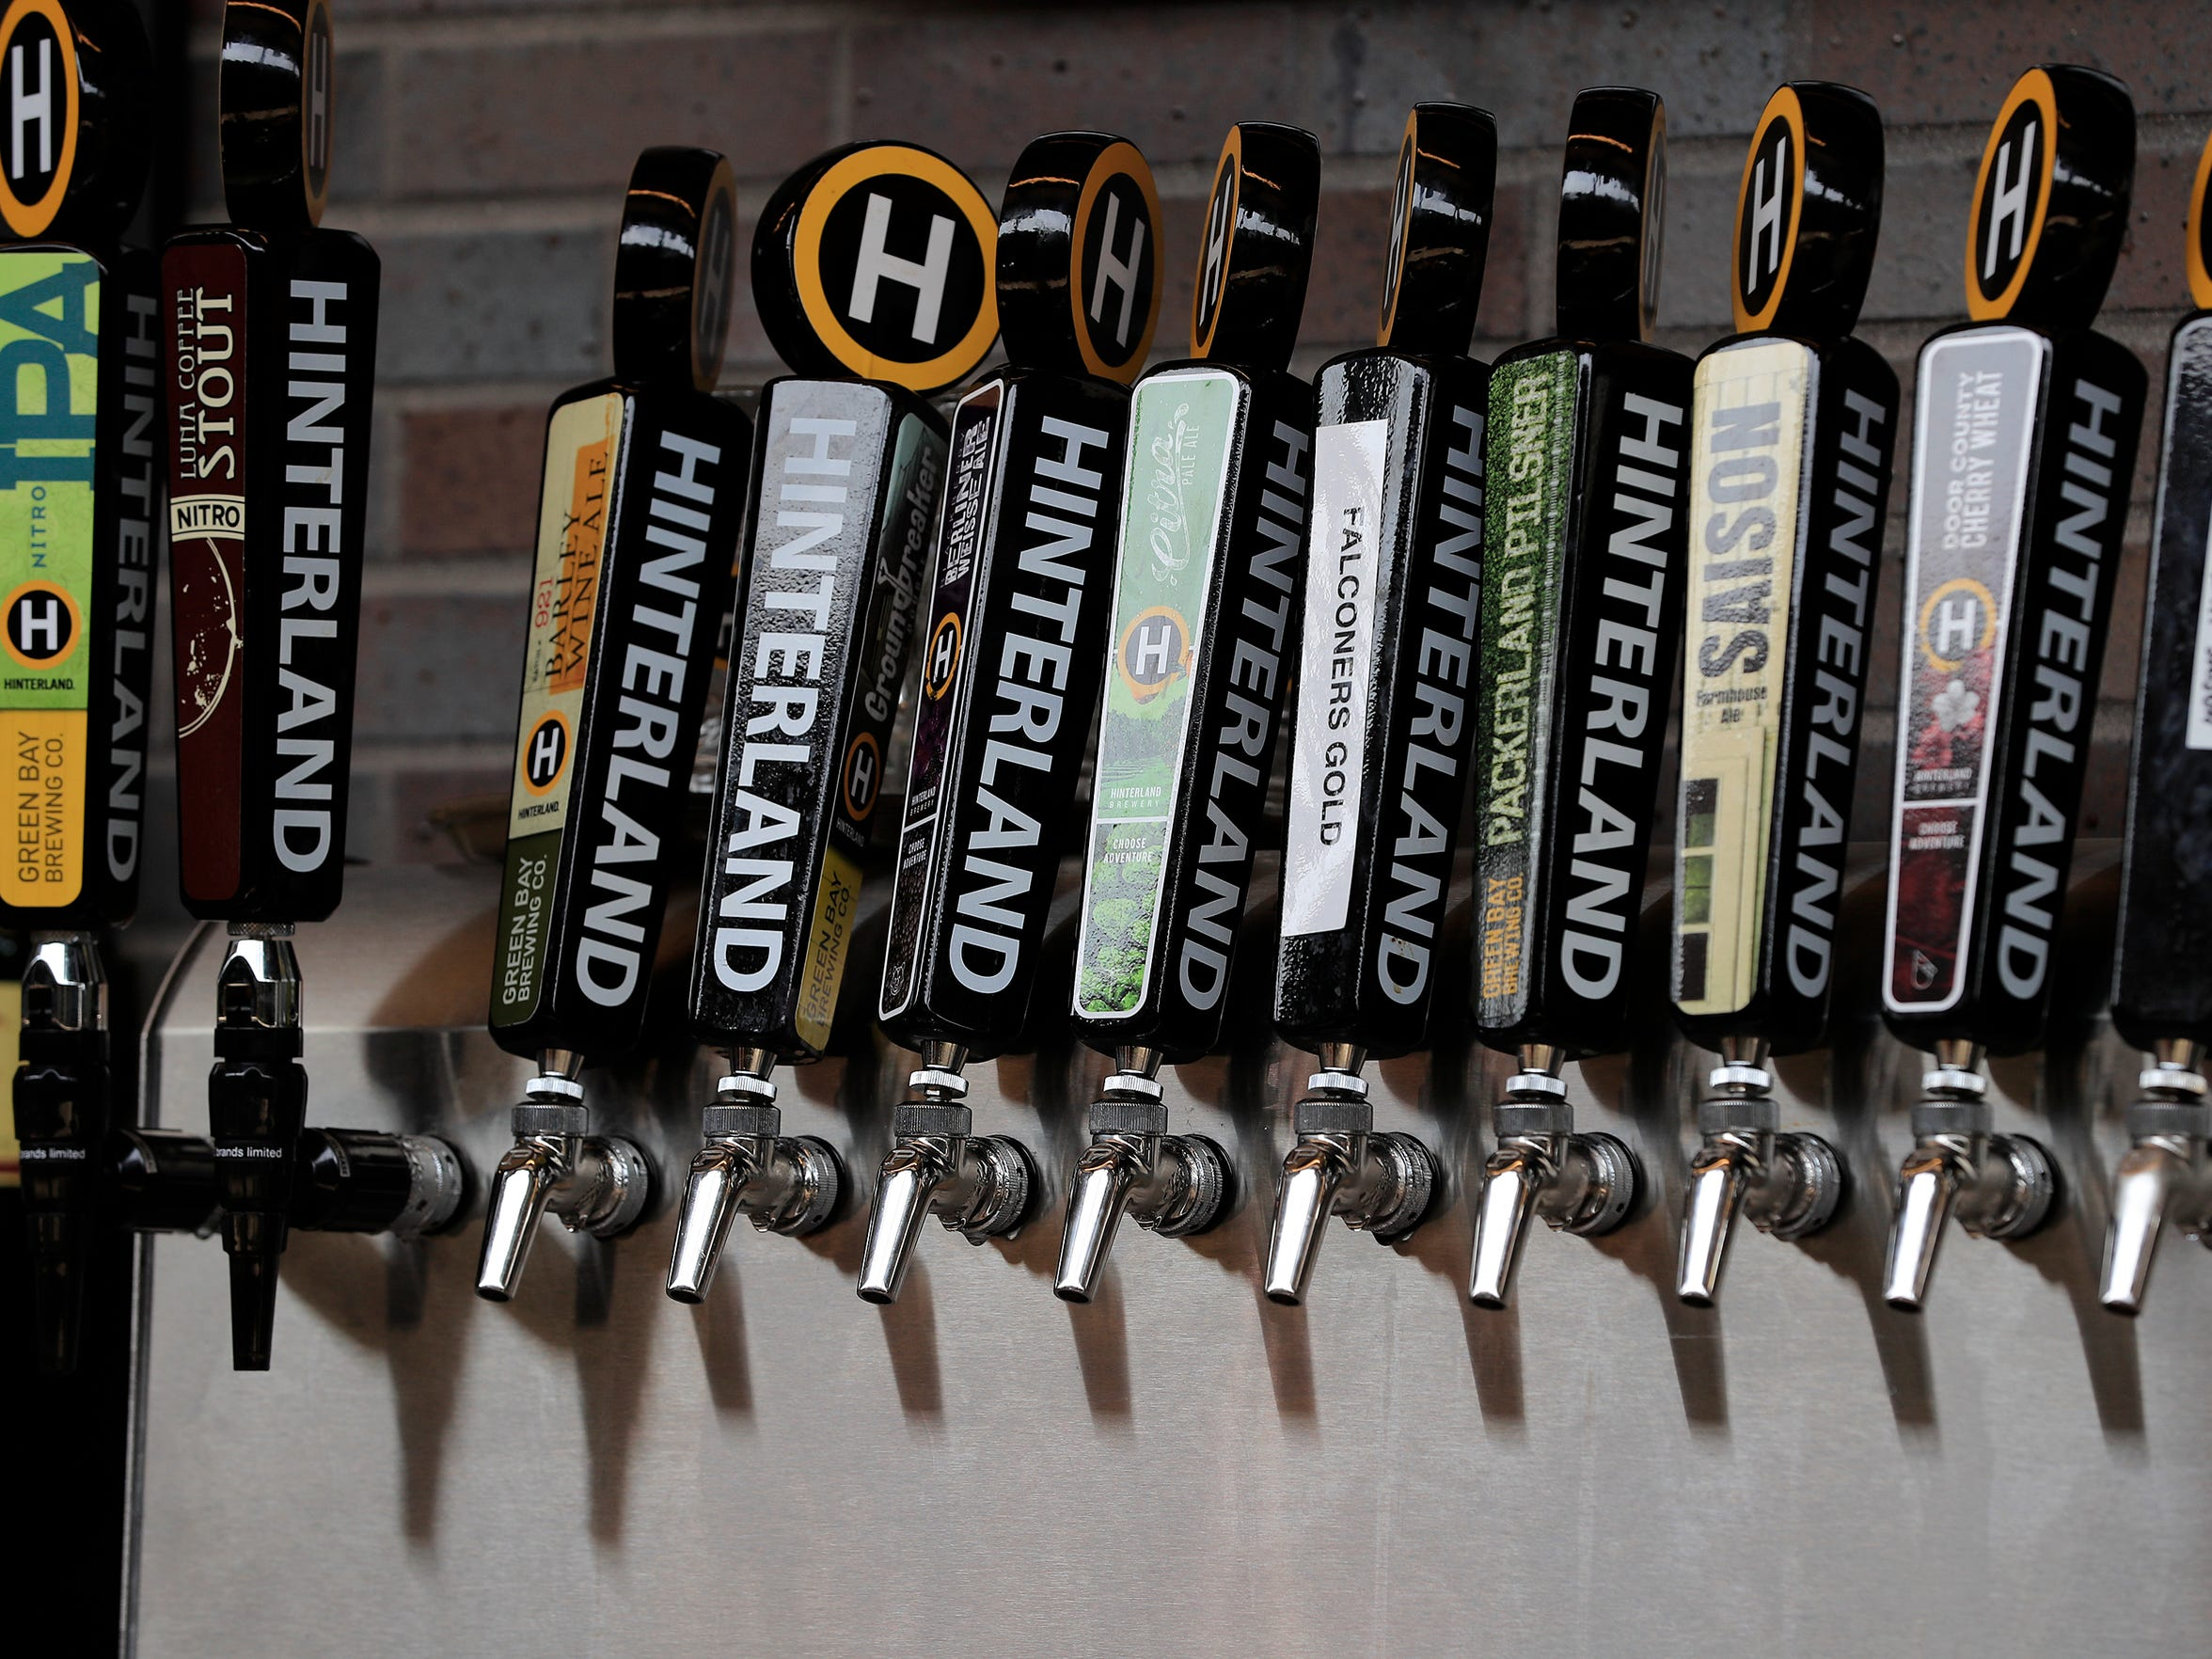 Taps of beer are shown at Hinterland Brewing on Thursday, June 8, 2017, in Ashwaubenon.